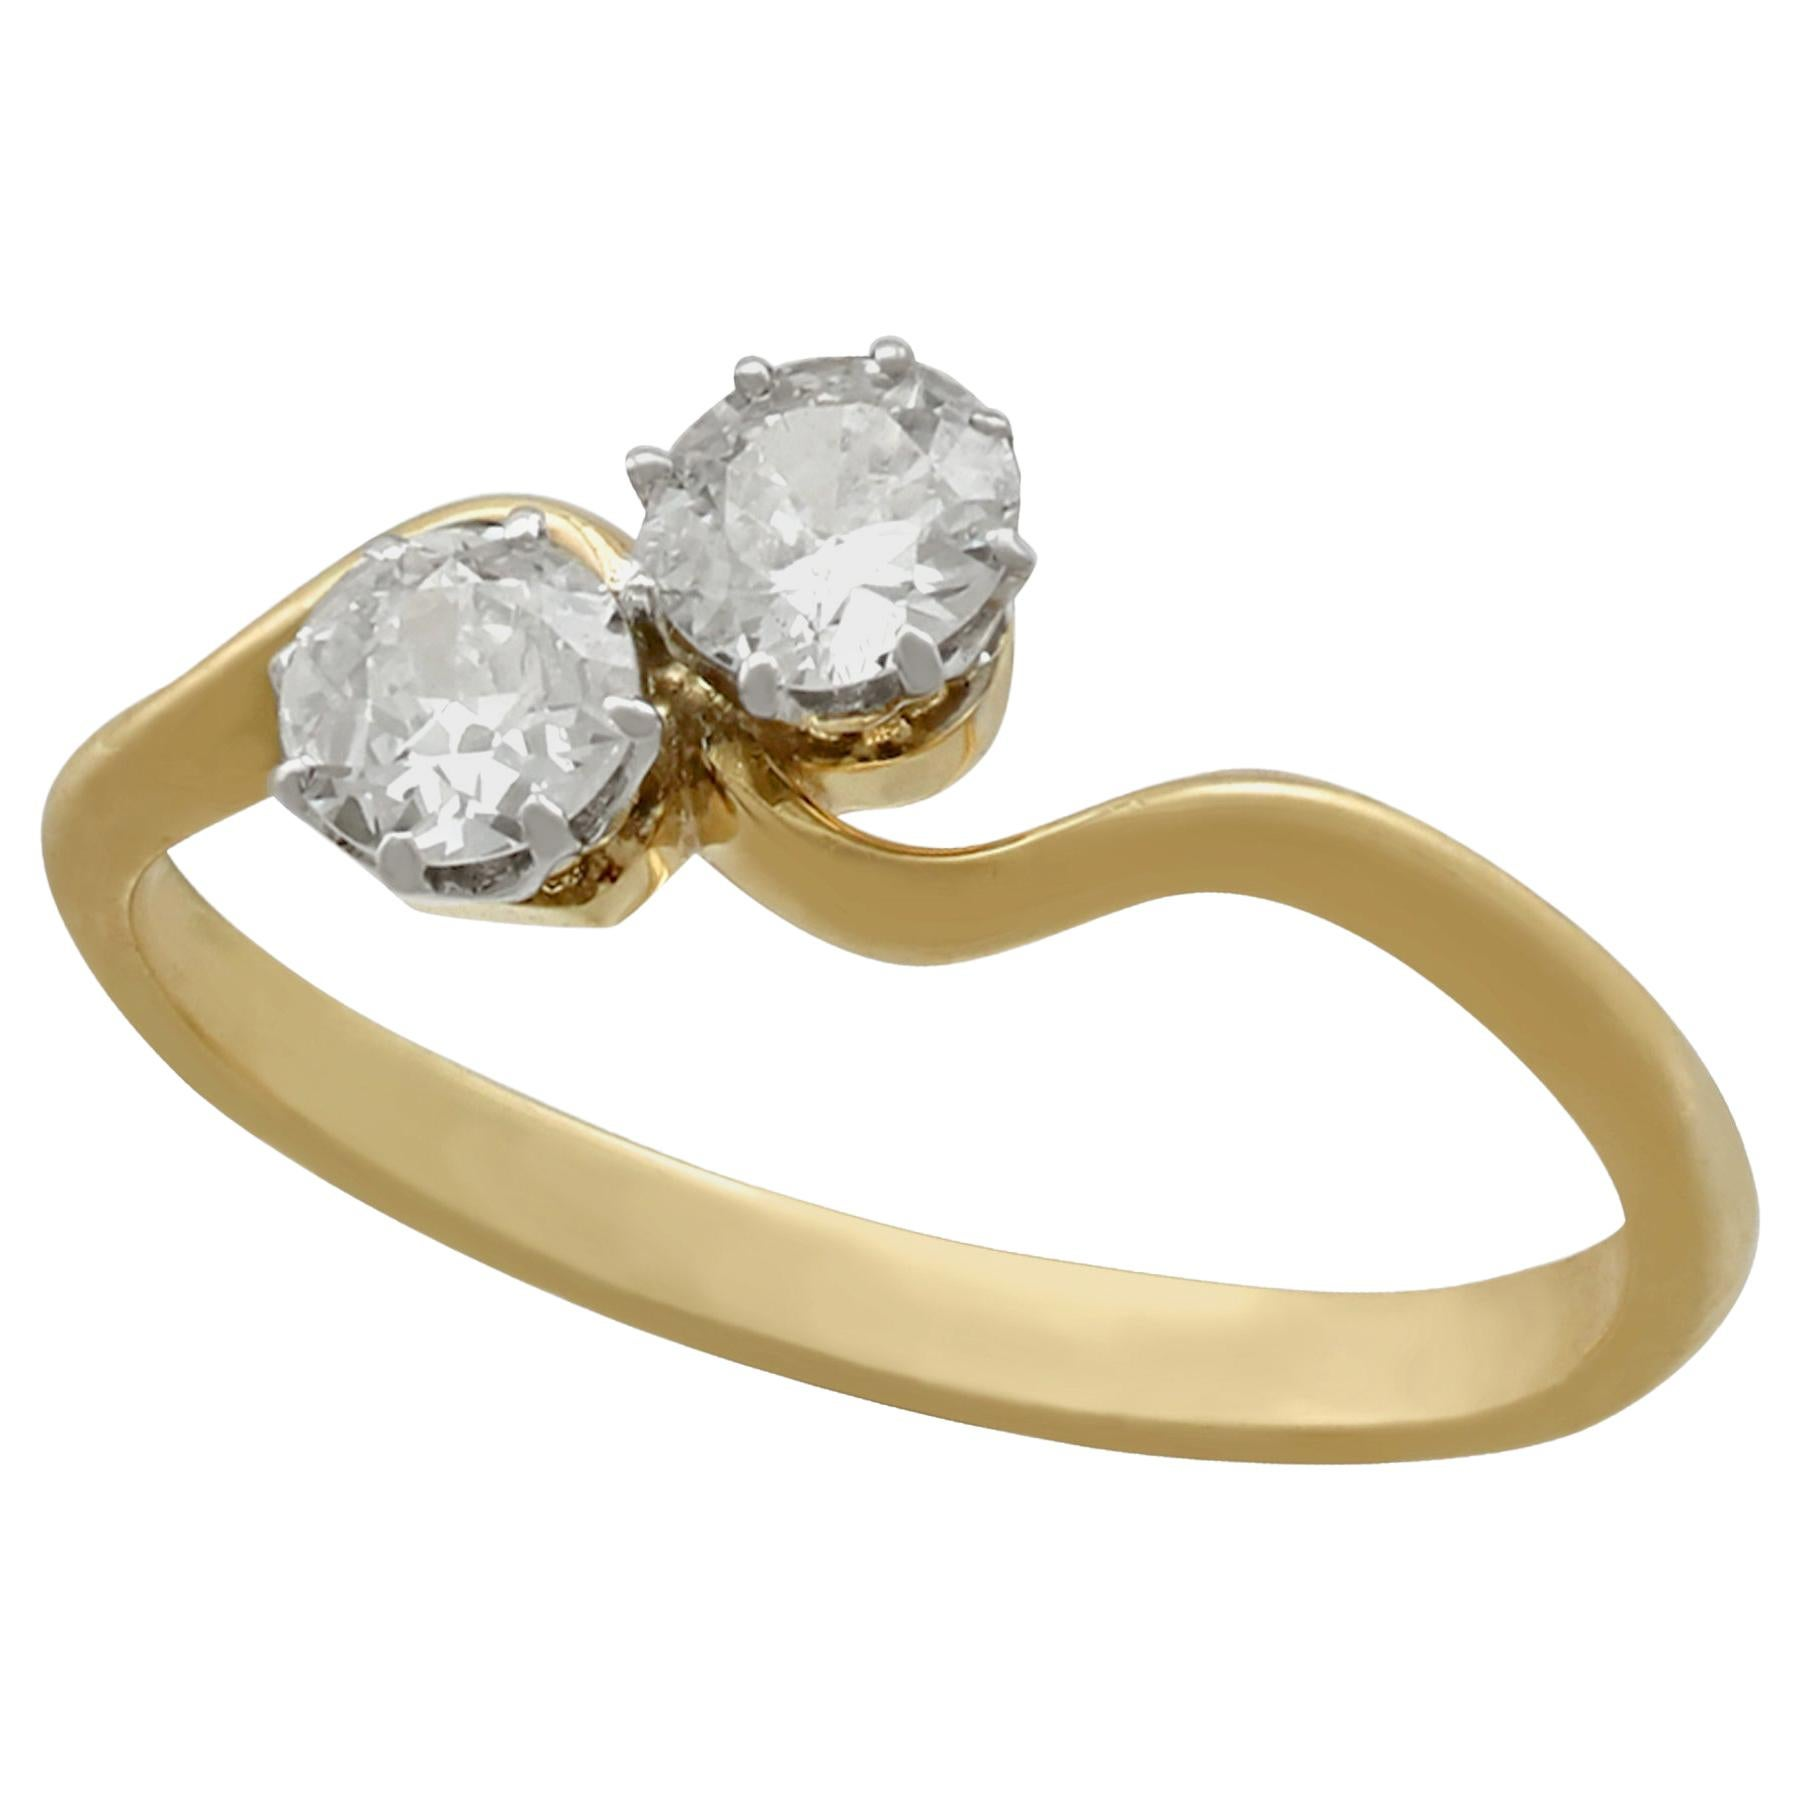 1920s Antique Diamond and Yellow Gold Twist Ring